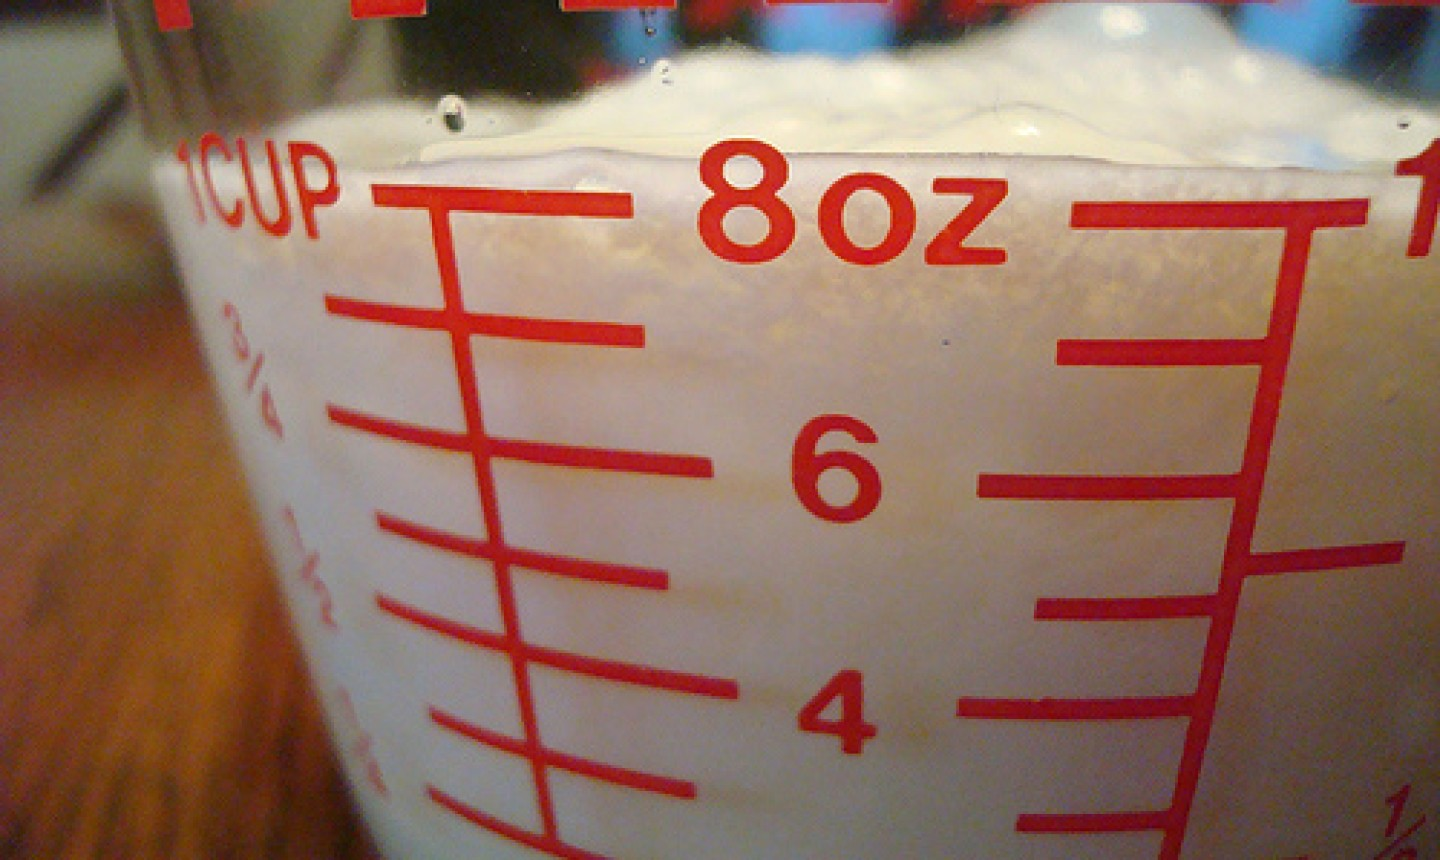 Milk in a Glass Measuring Cup